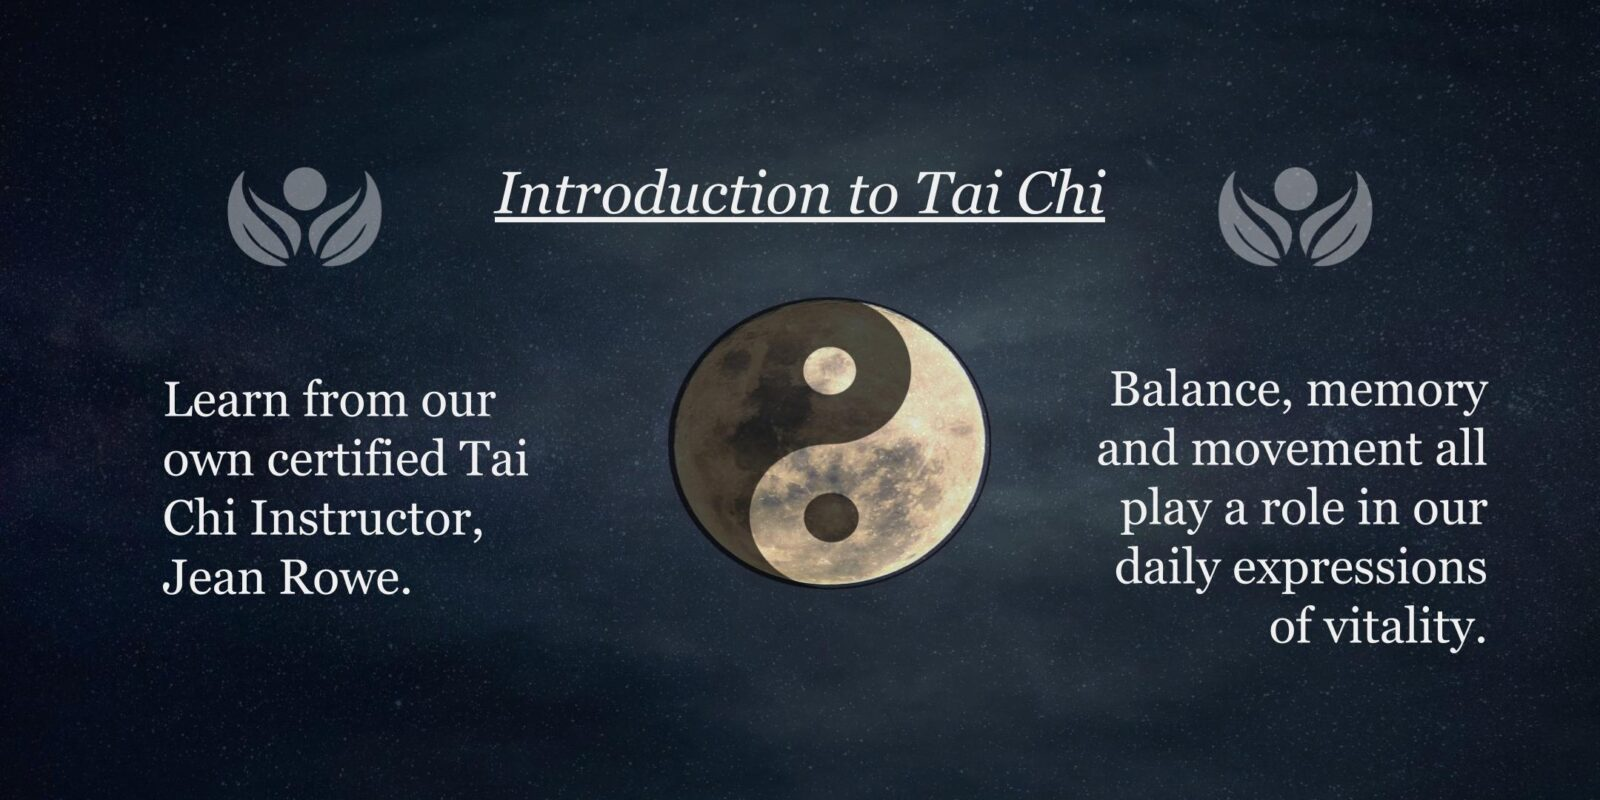 Introduction to tai chi